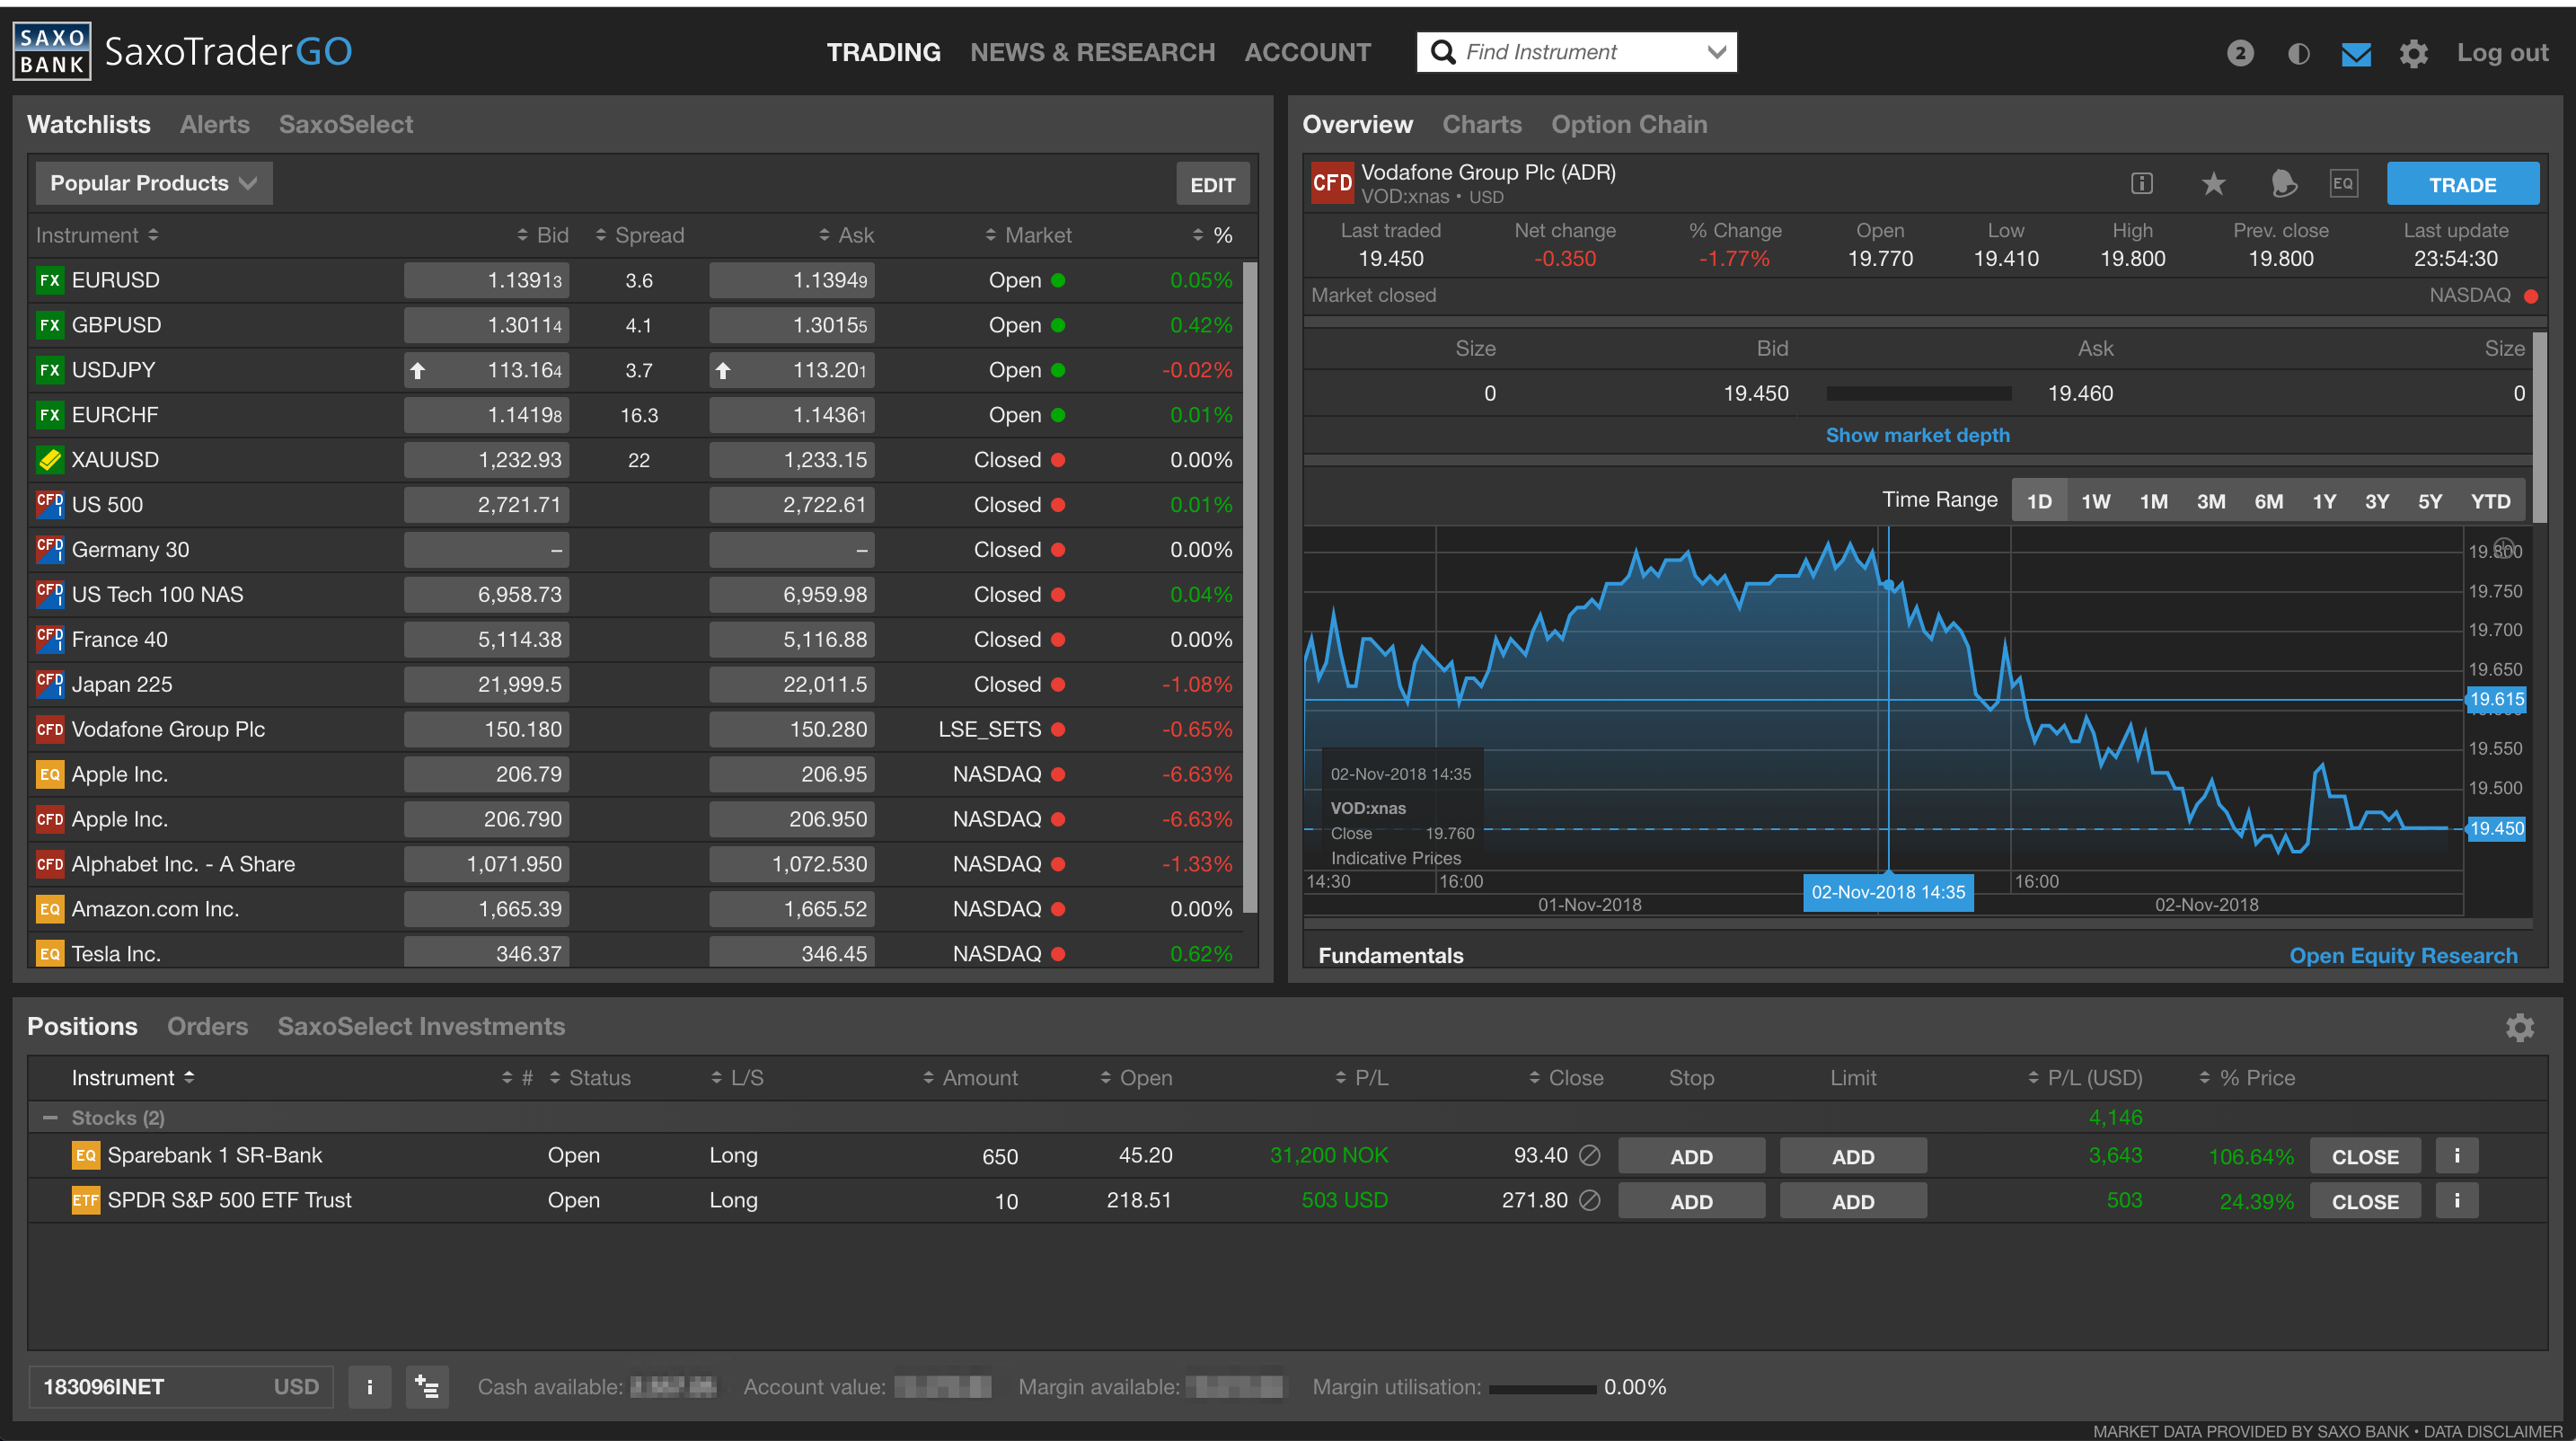 How to invest in stocks - Saxo web trading platform